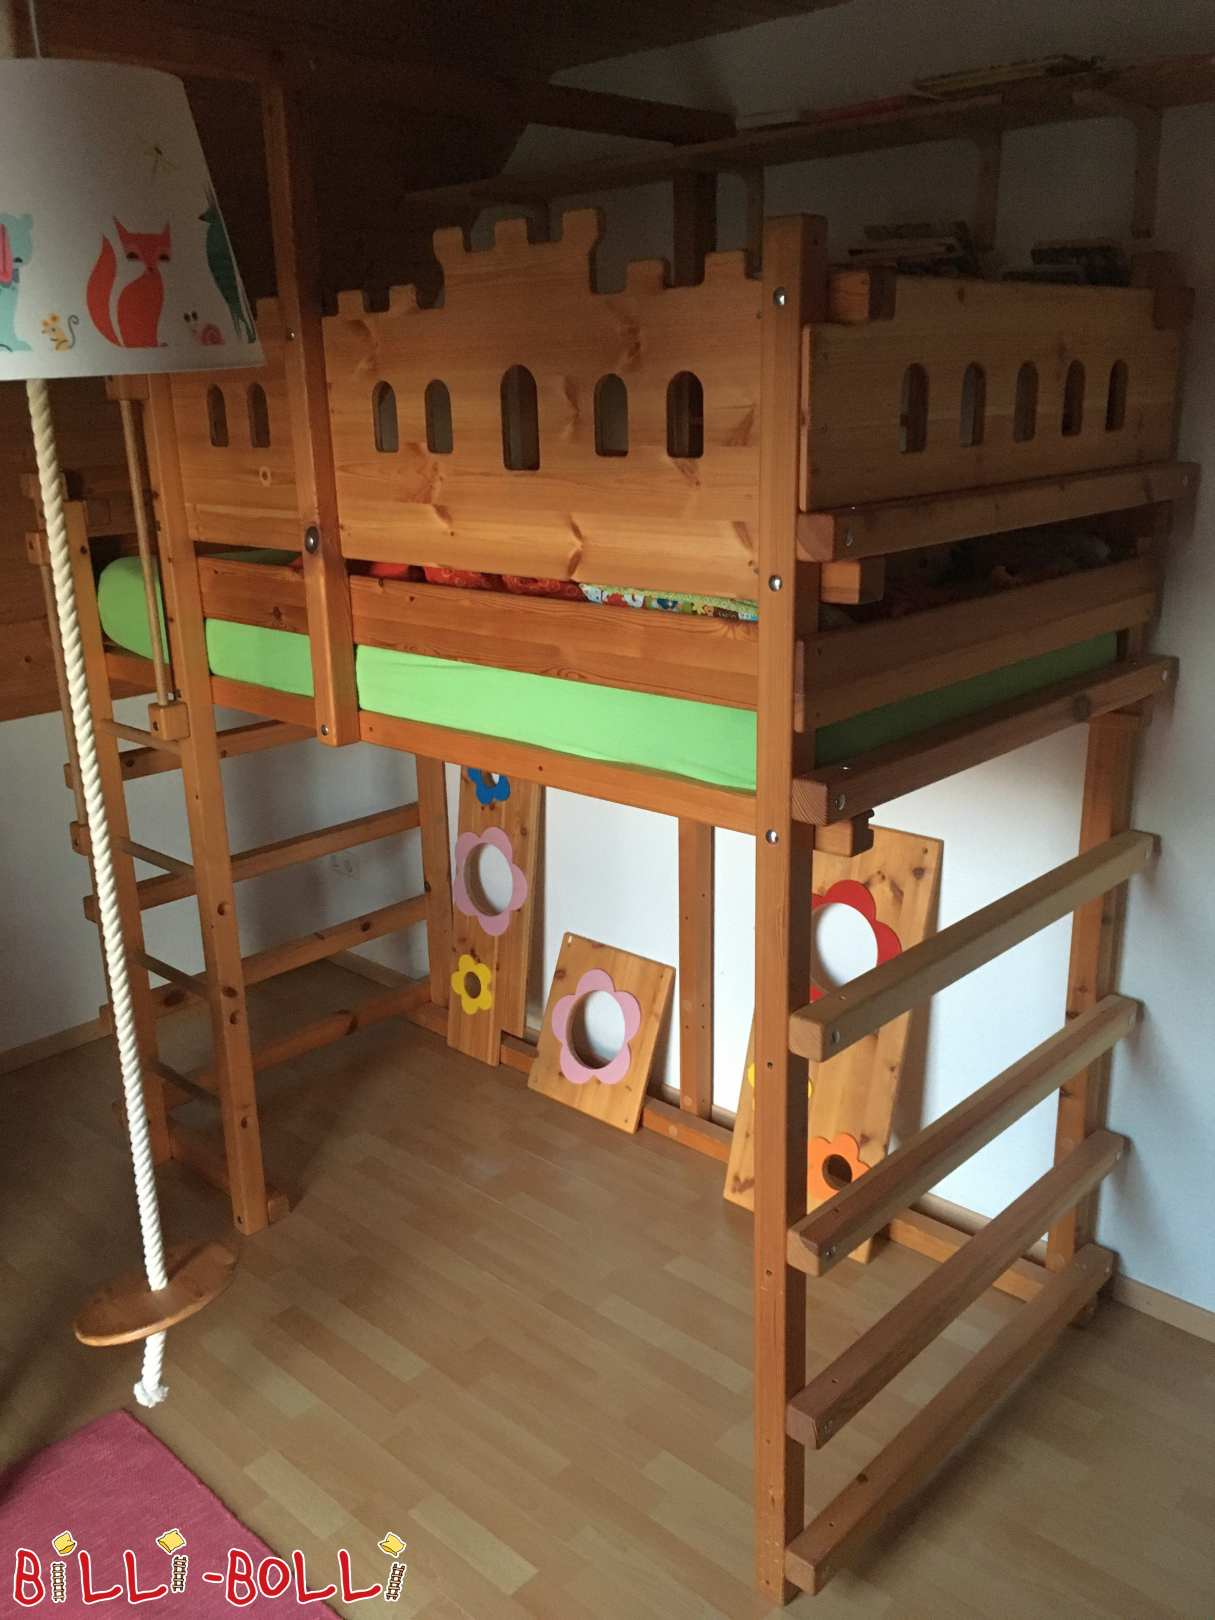 Growing high bed with sloping roof stage (second hand loft bed)